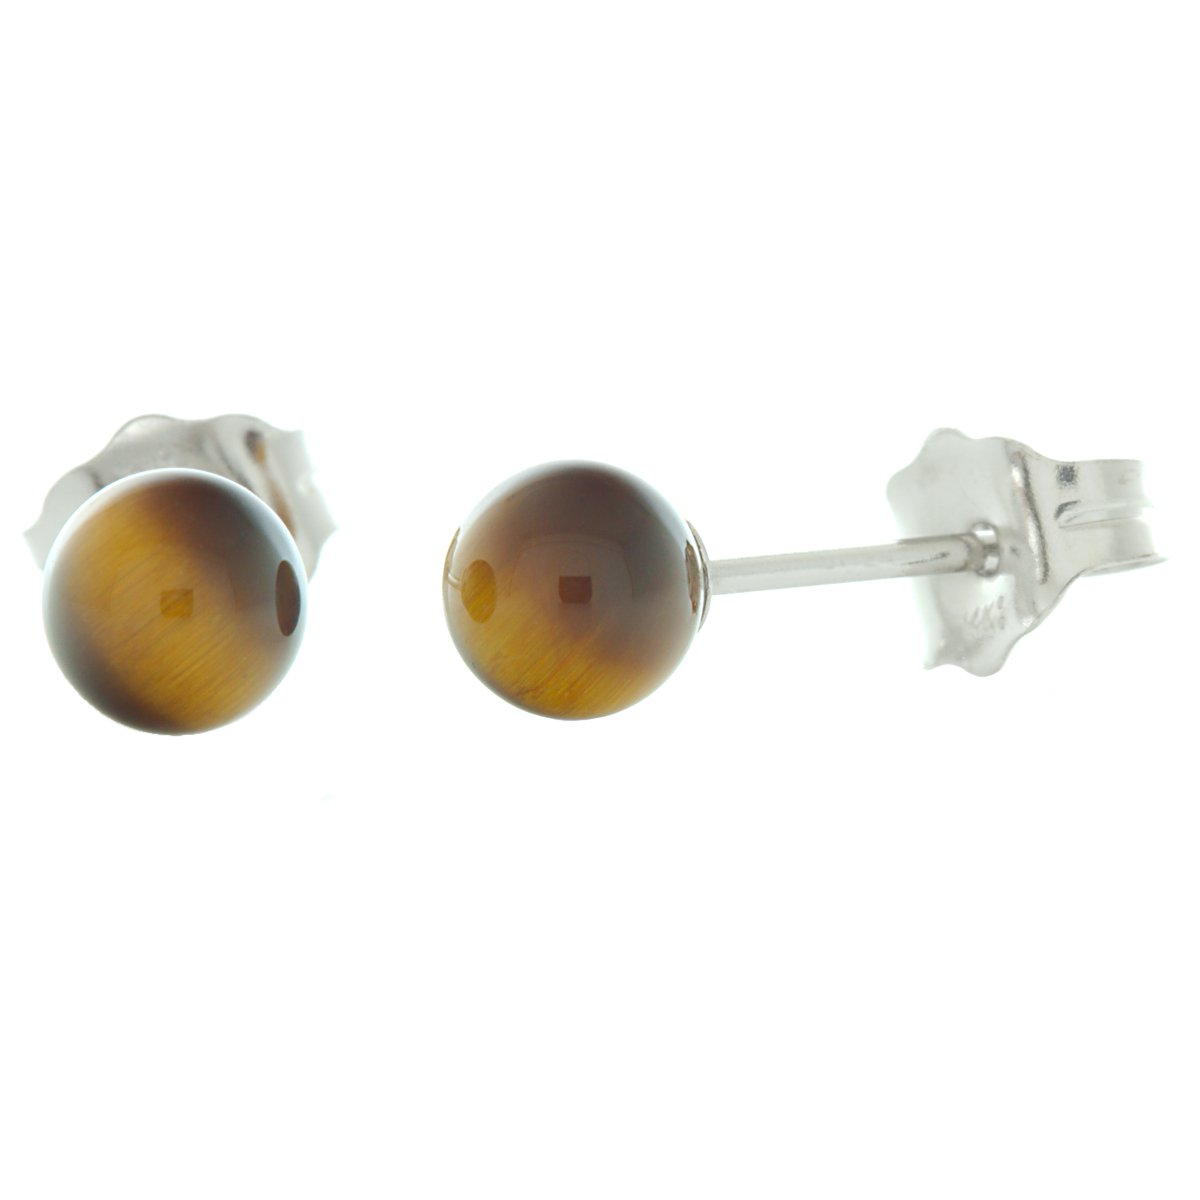 ae6b14f07 Amazon.com: Trustmark 14K White Gold 4mm Natural Brown Tigers Eye Ball Stud  Post Earrings: Jewelry